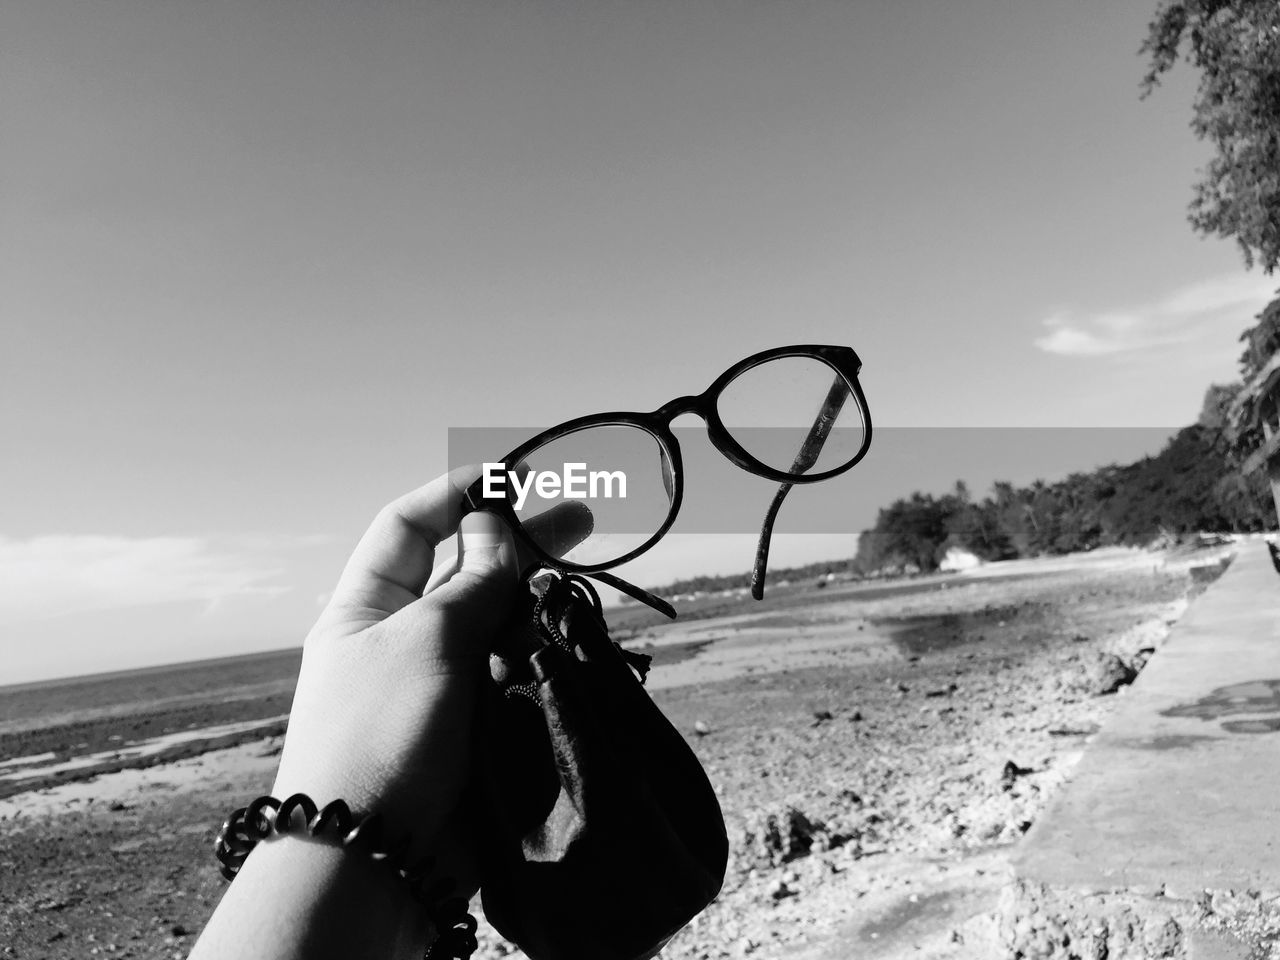 sky, human hand, hand, real people, one person, holding, glasses, land, nature, human body part, personal perspective, lifestyles, leisure activity, day, beach, unrecognizable person, eyeglasses, finger, human finger, outdoors, personal accessory